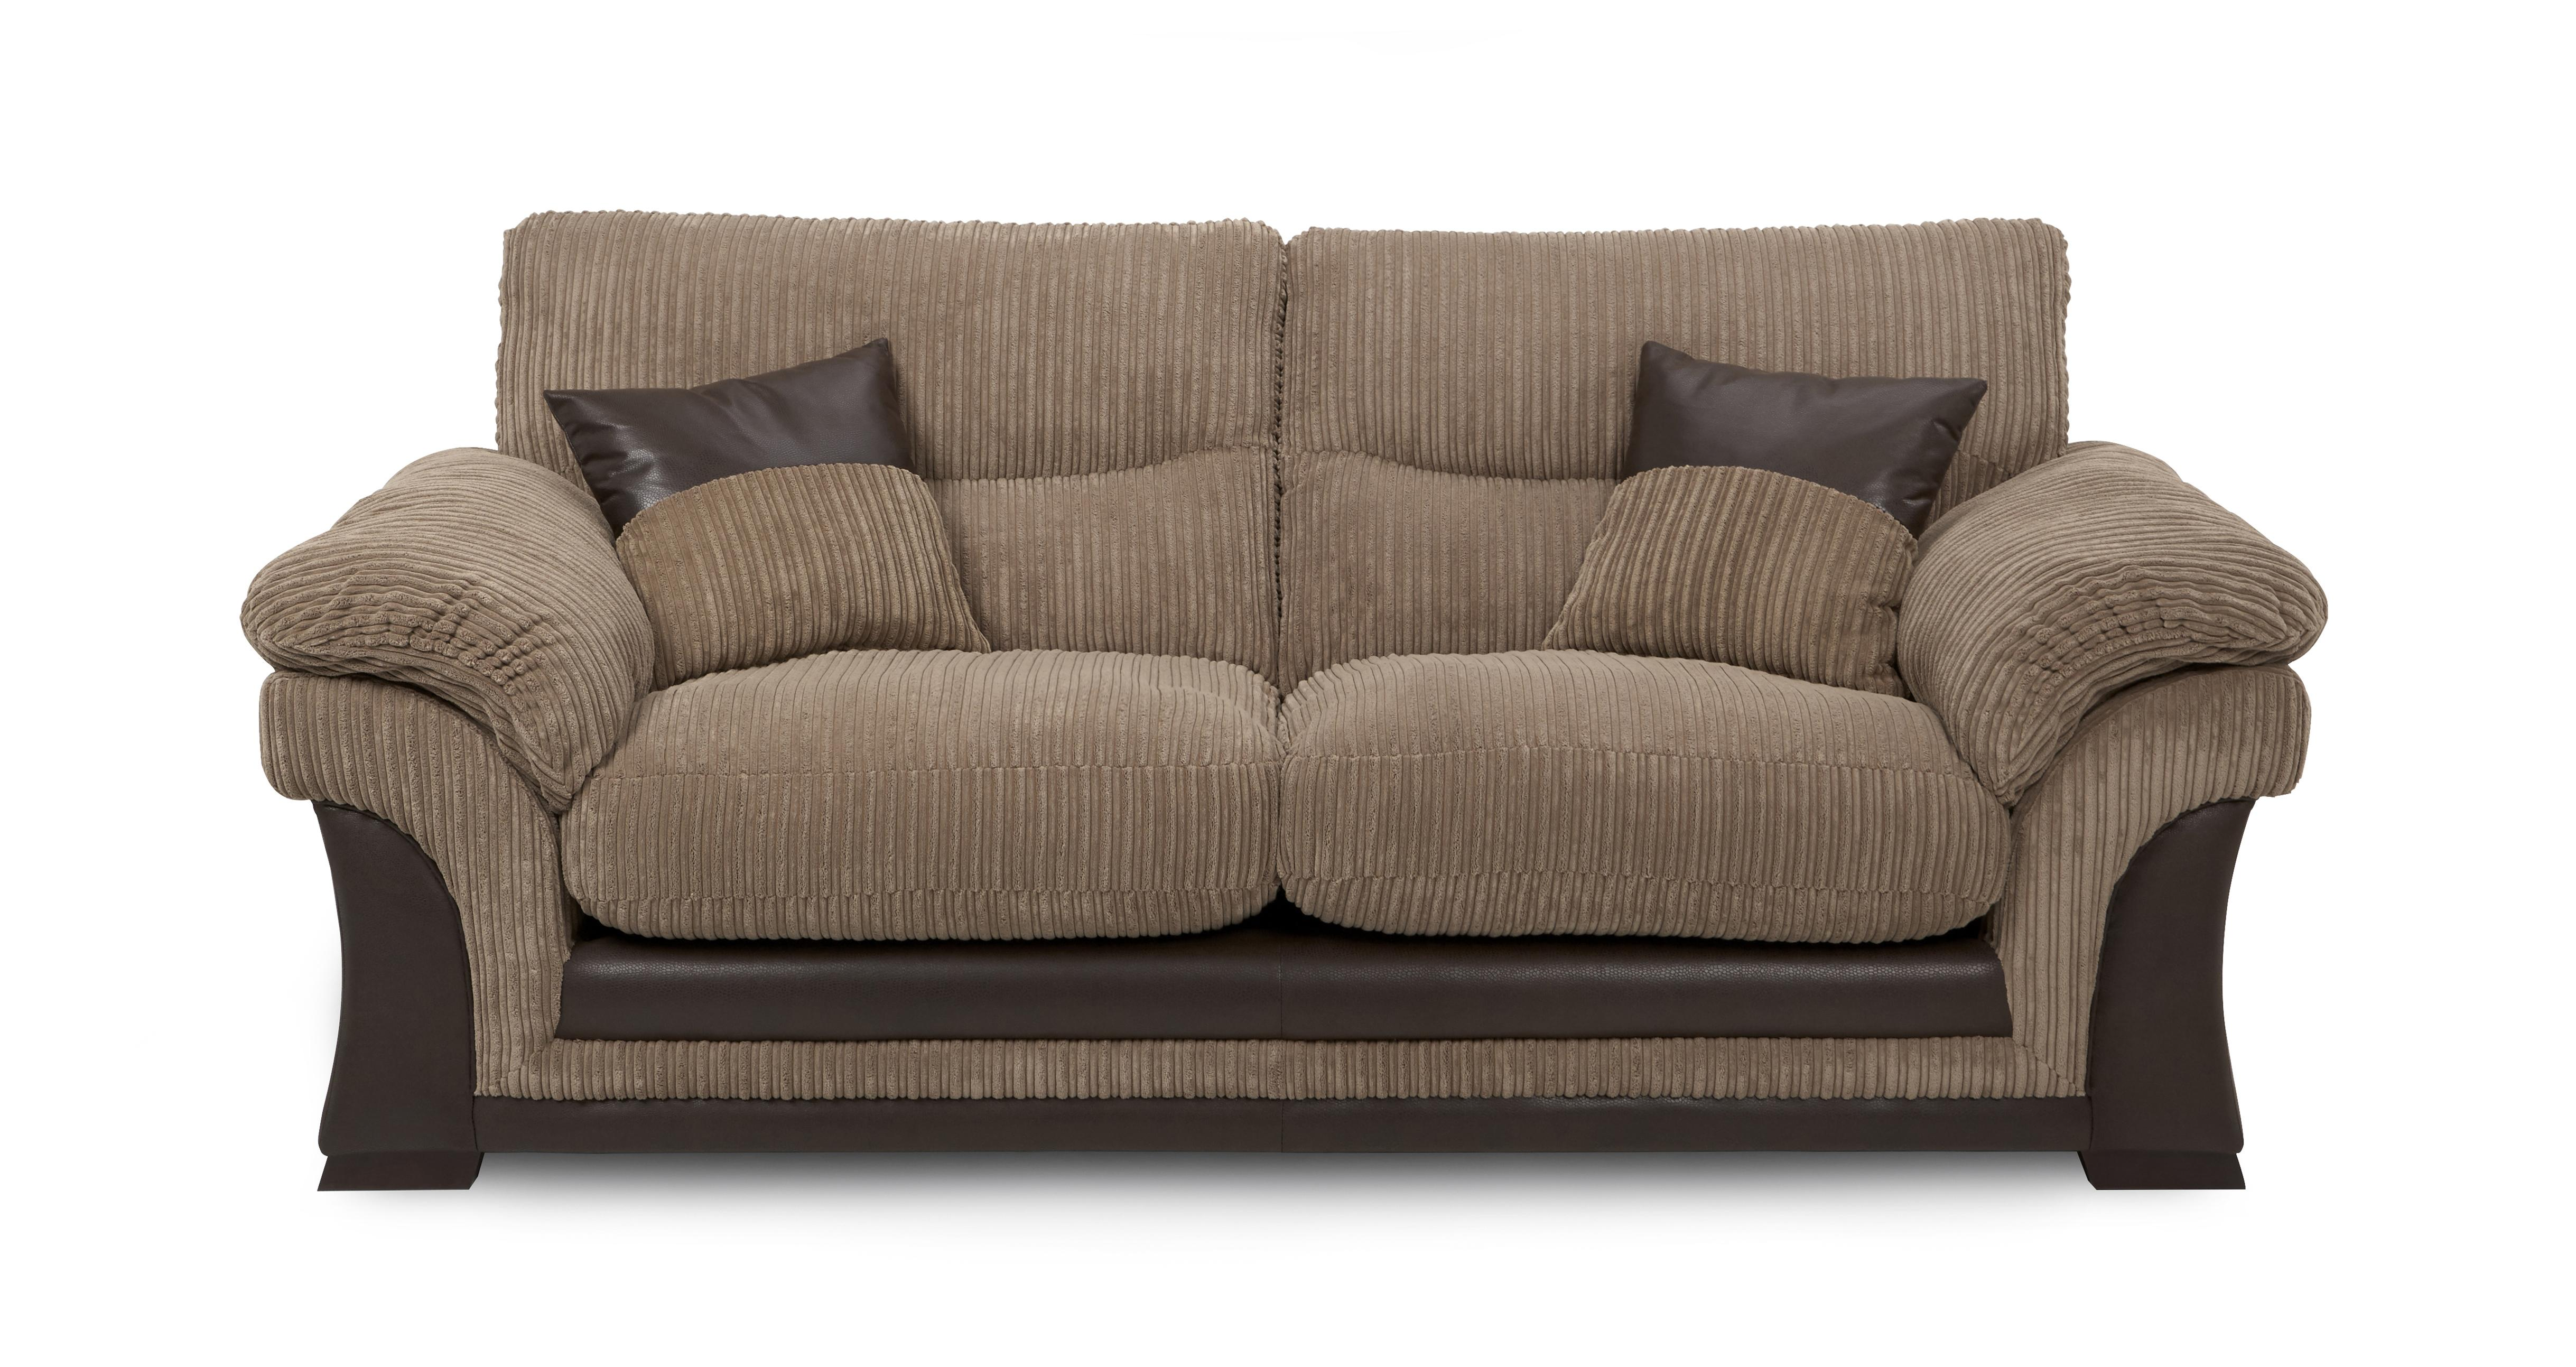 dfs sofas ultra suede sofa bed who makes brokeasshome